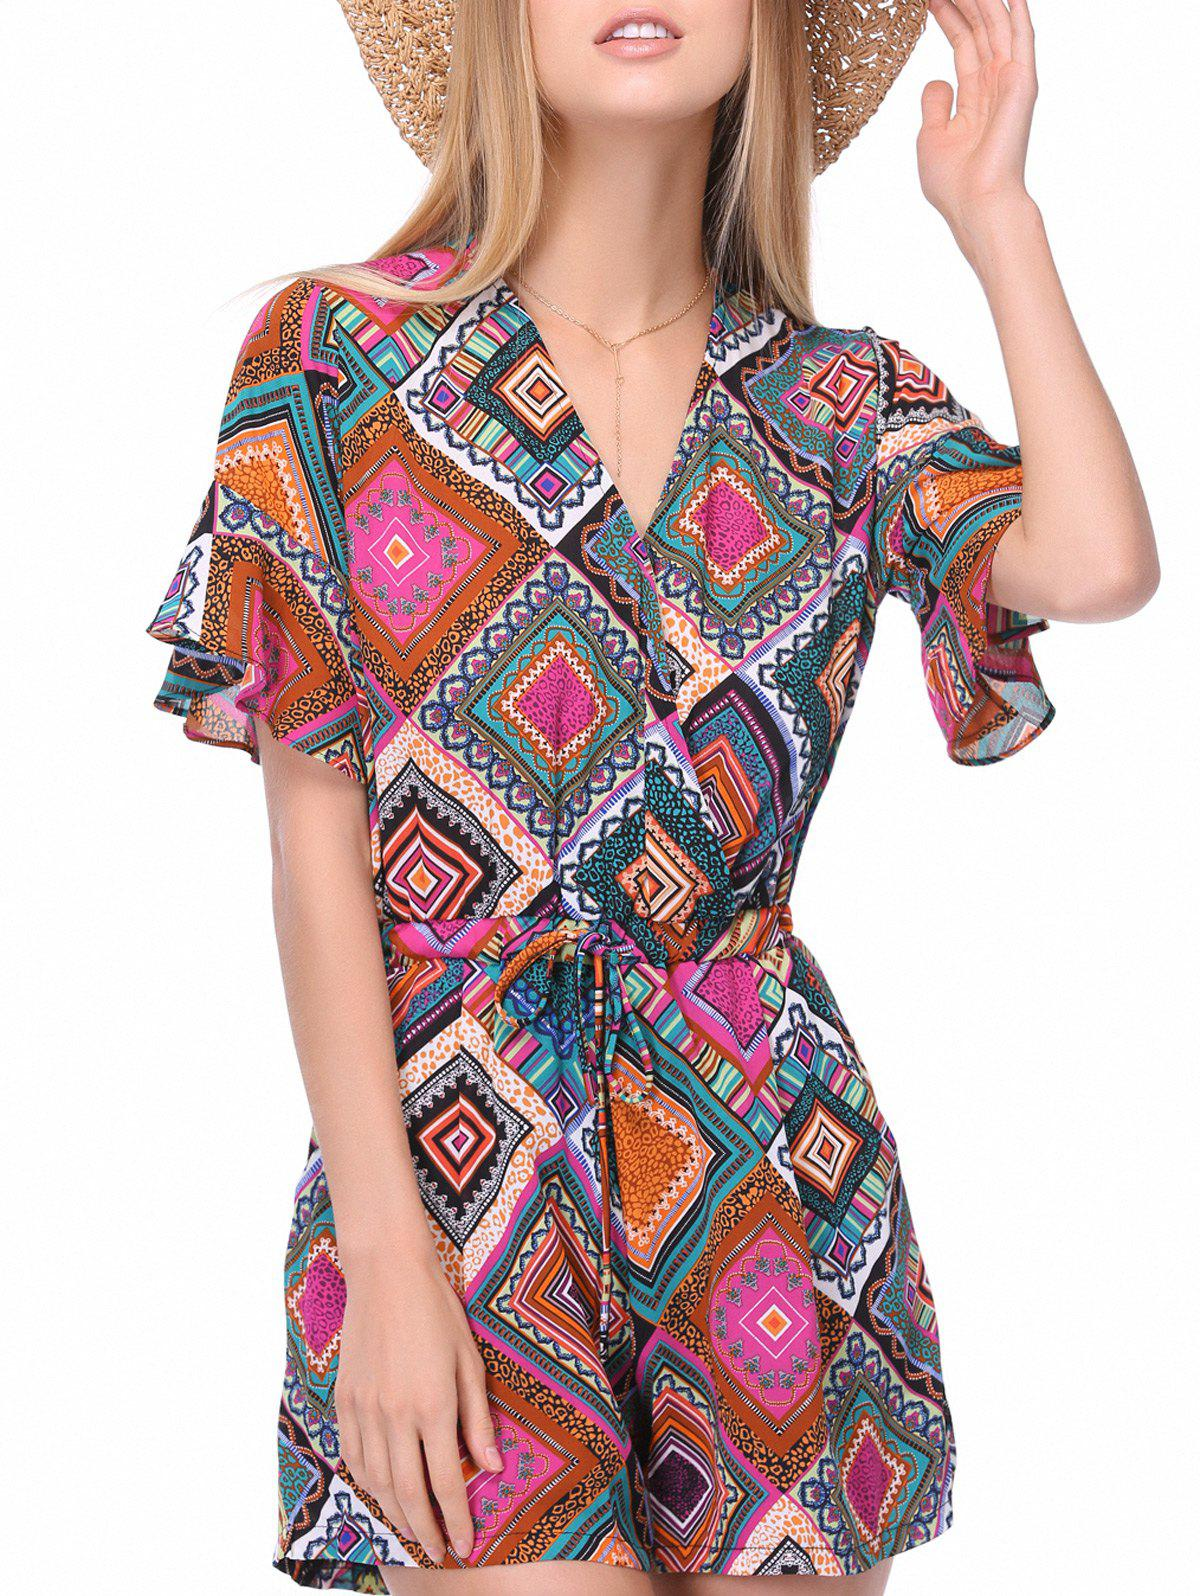 Ethnic Women's V-Neck Print Drawstring Romper - COLORMIX ONE SIZE(FIT SIZE XS TO M)